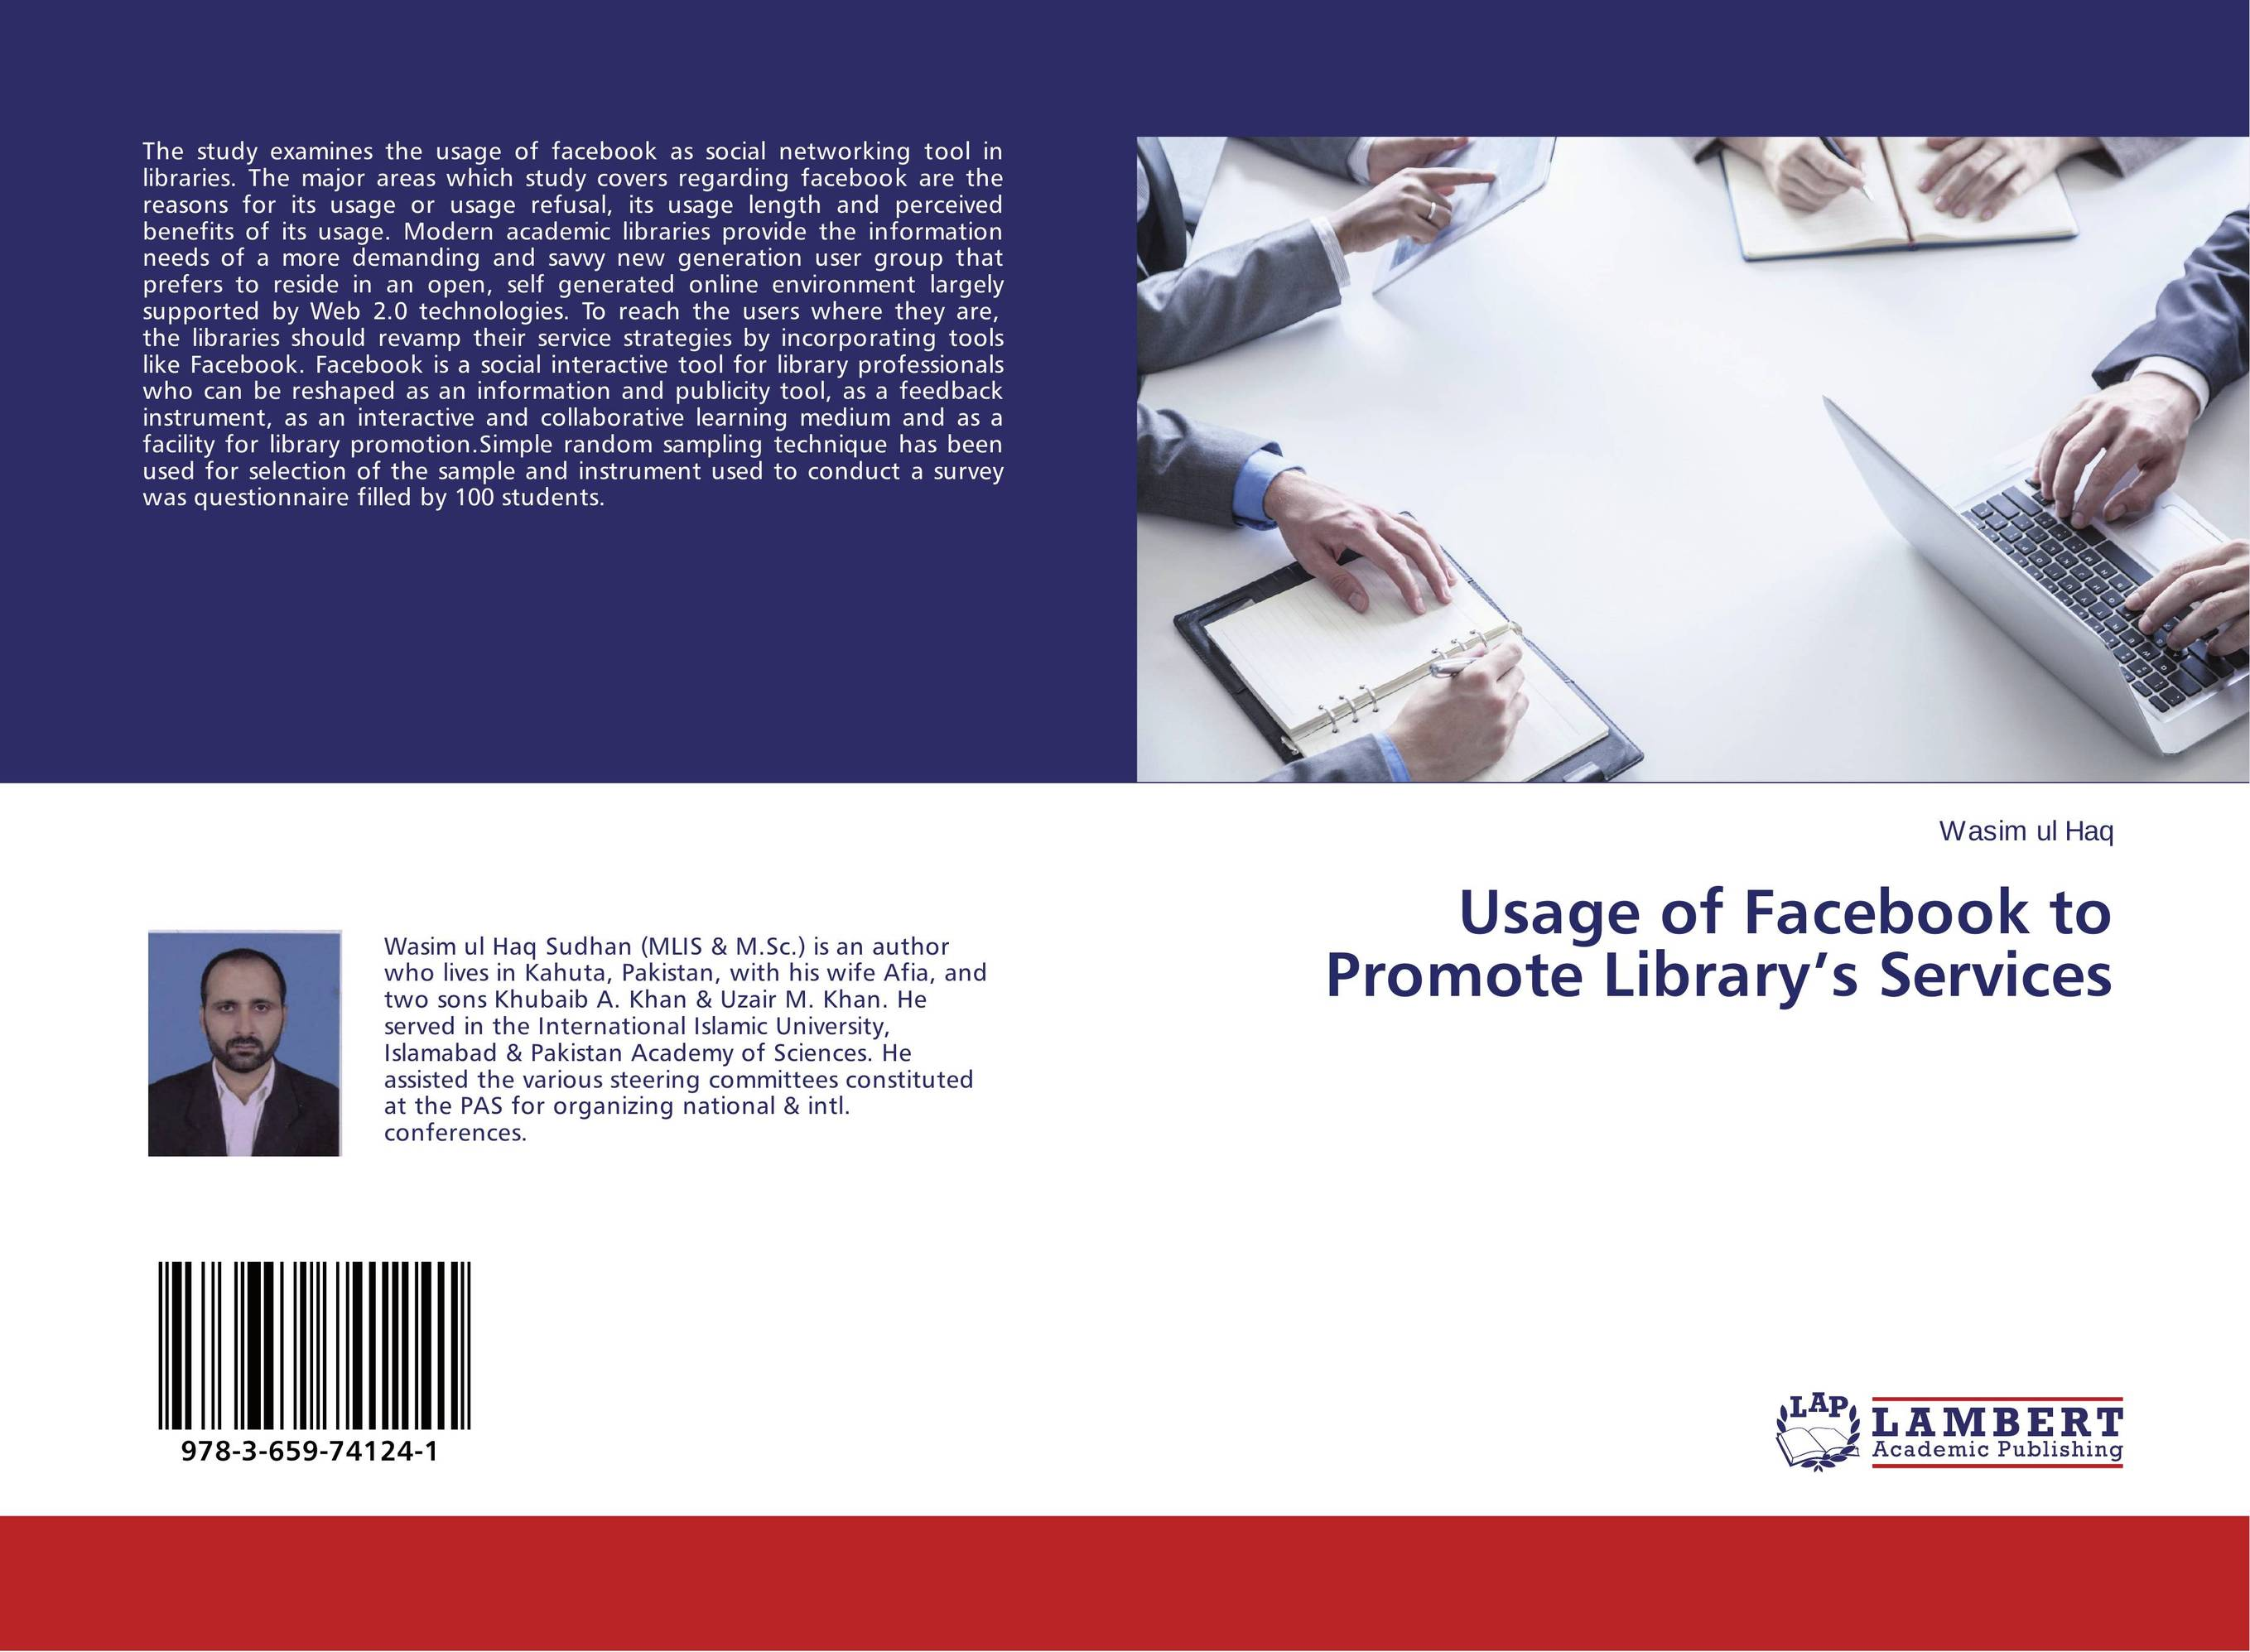 Usage of Facebook to Promote Library's Services a decision support tool for library book inventory management